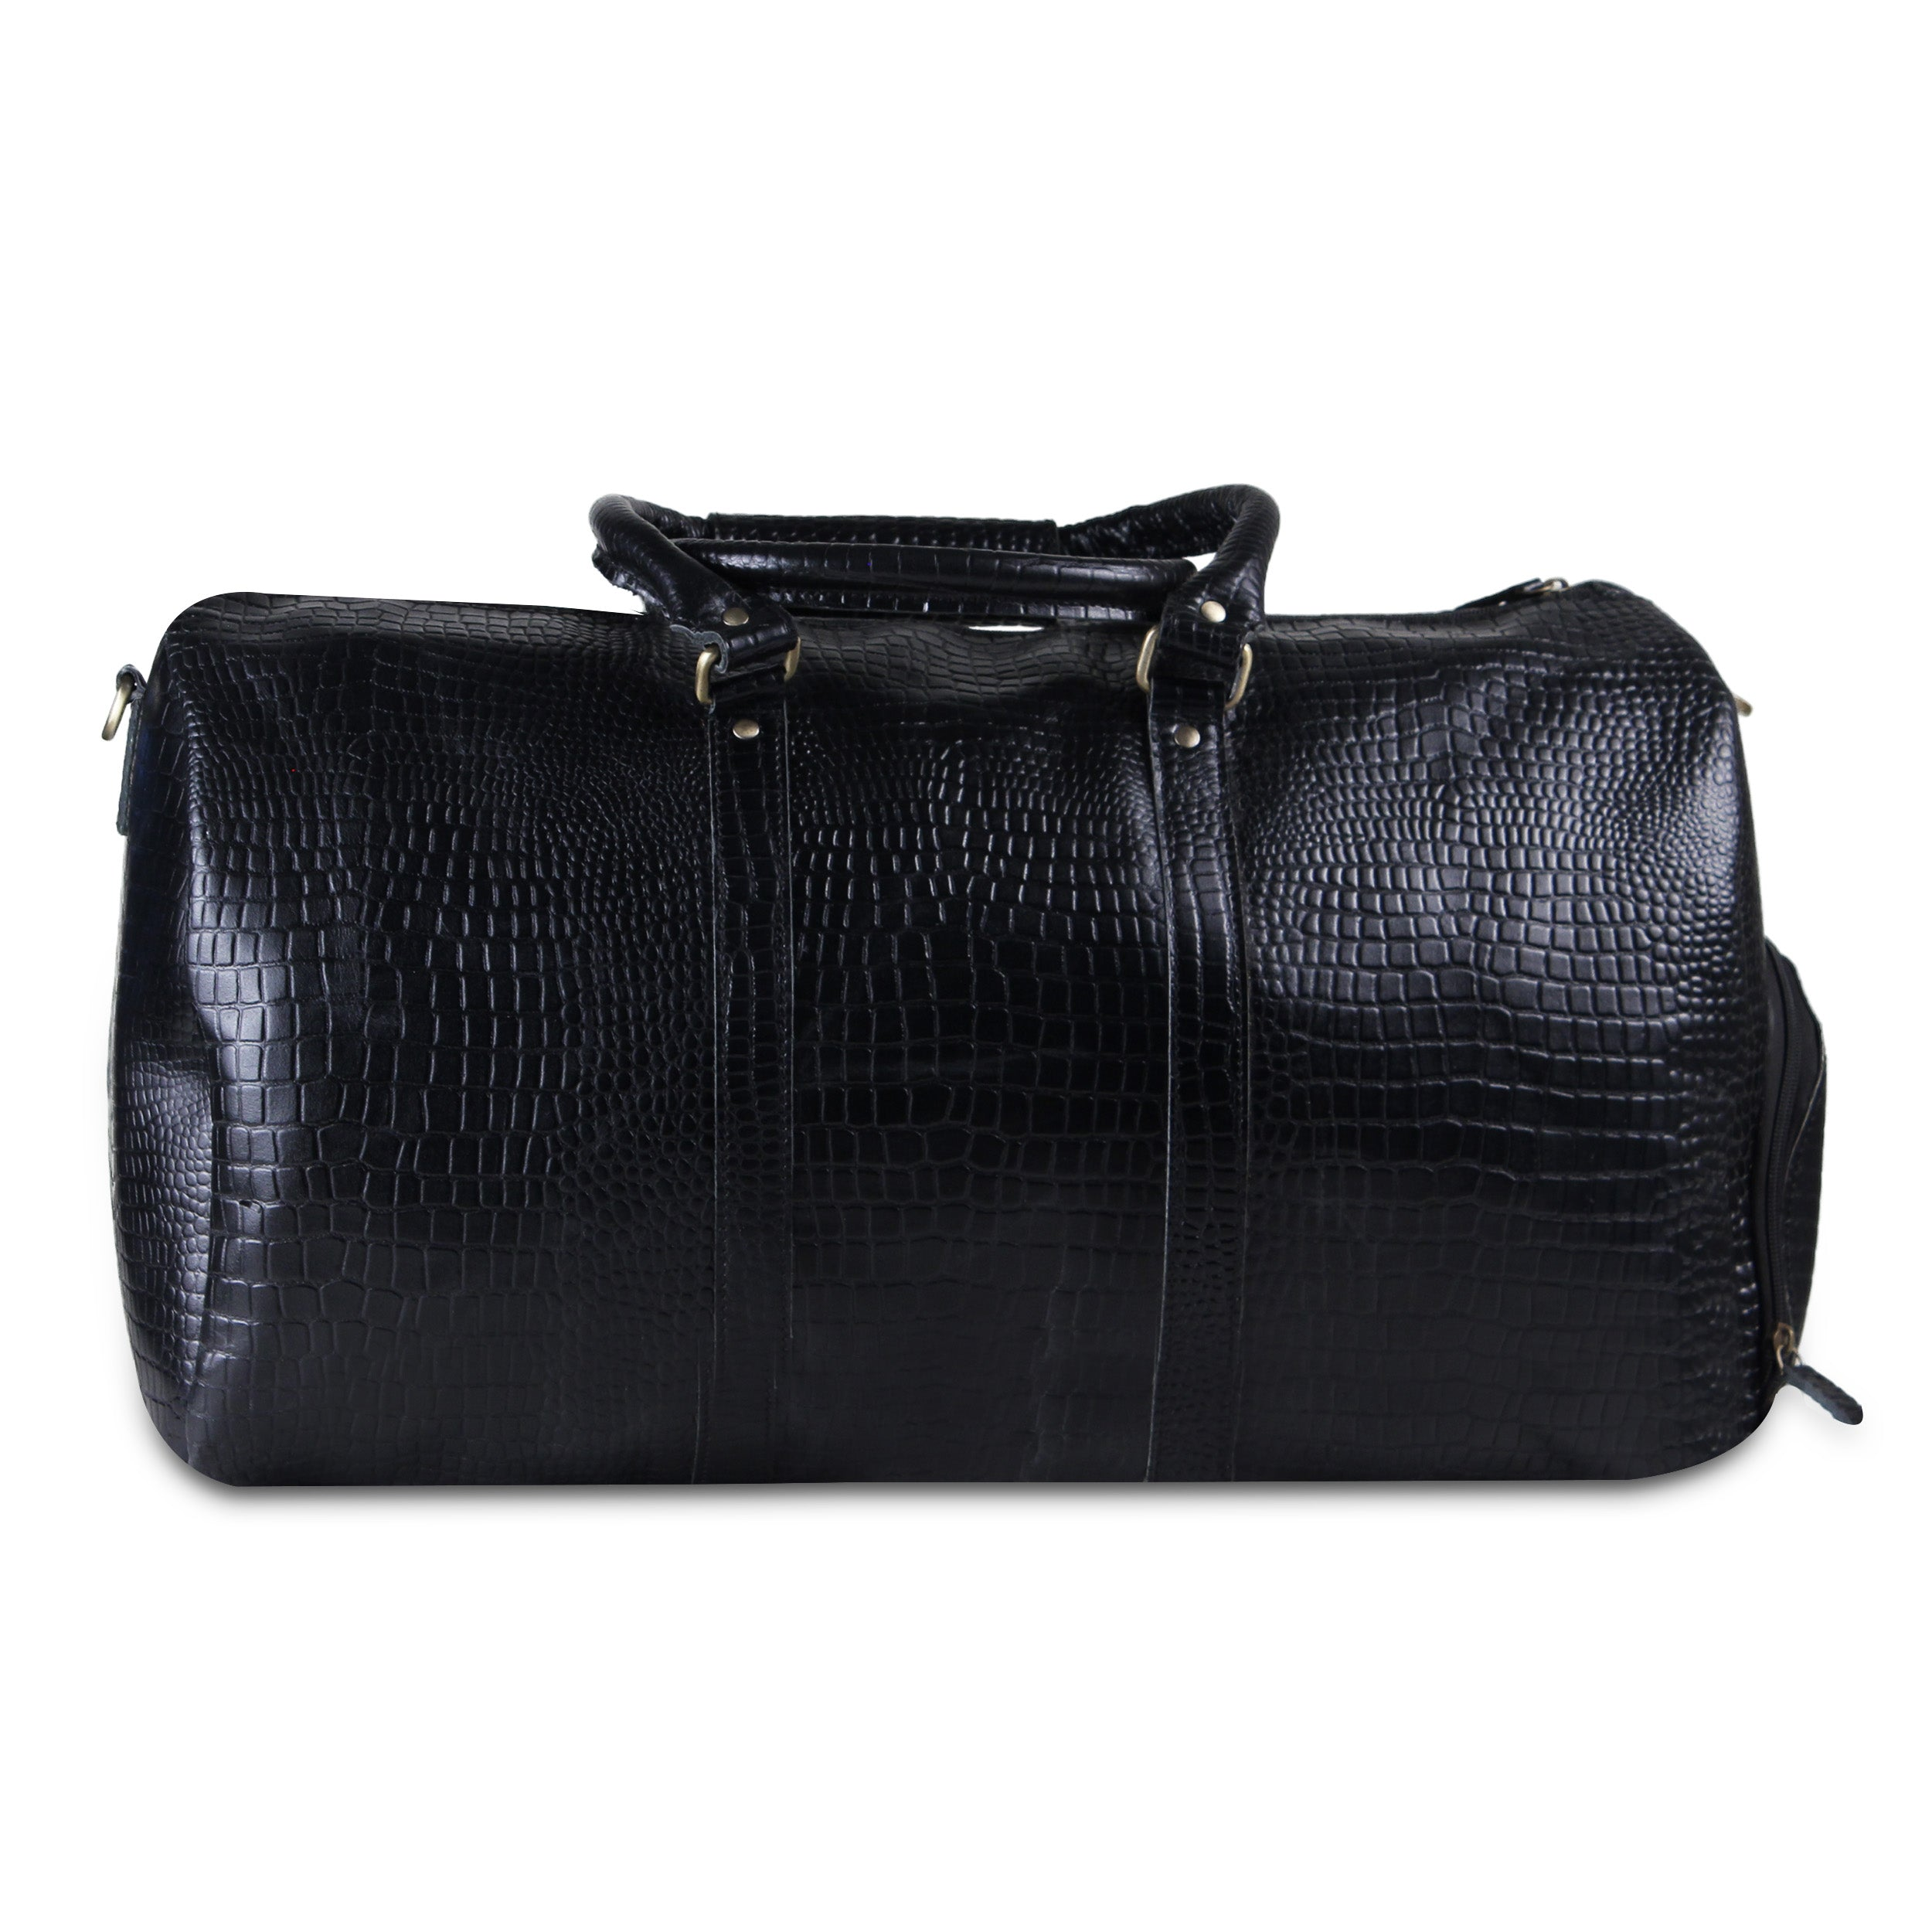 Black Leather Duffle Weekender Overnight Gym Sports Bag By Hulsh